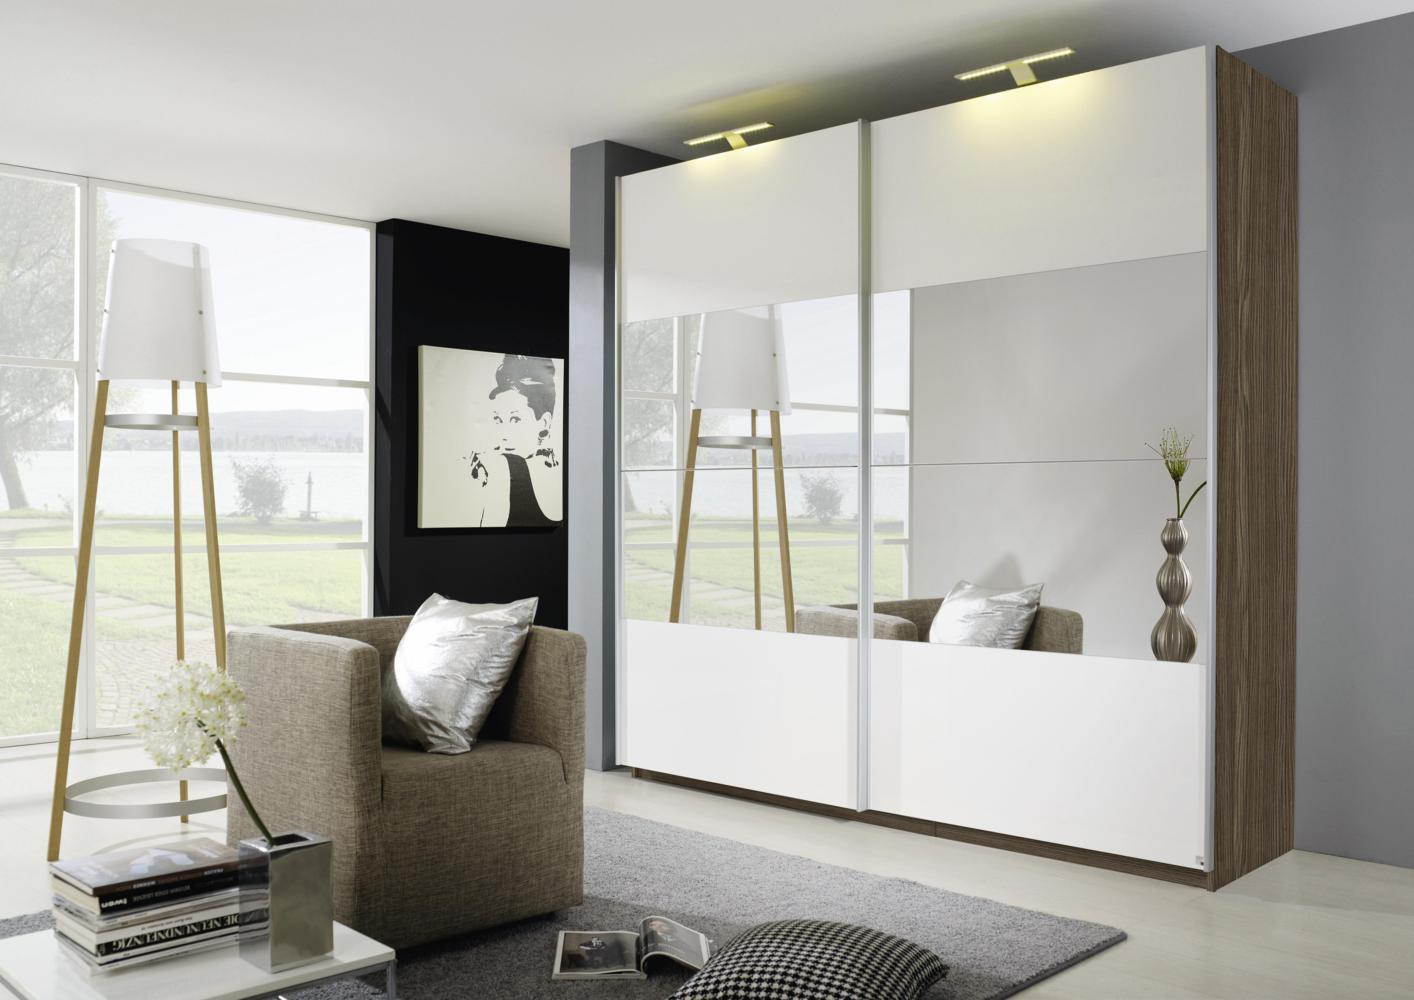 acheter votre armoire dressing contemporain d cor bois. Black Bedroom Furniture Sets. Home Design Ideas